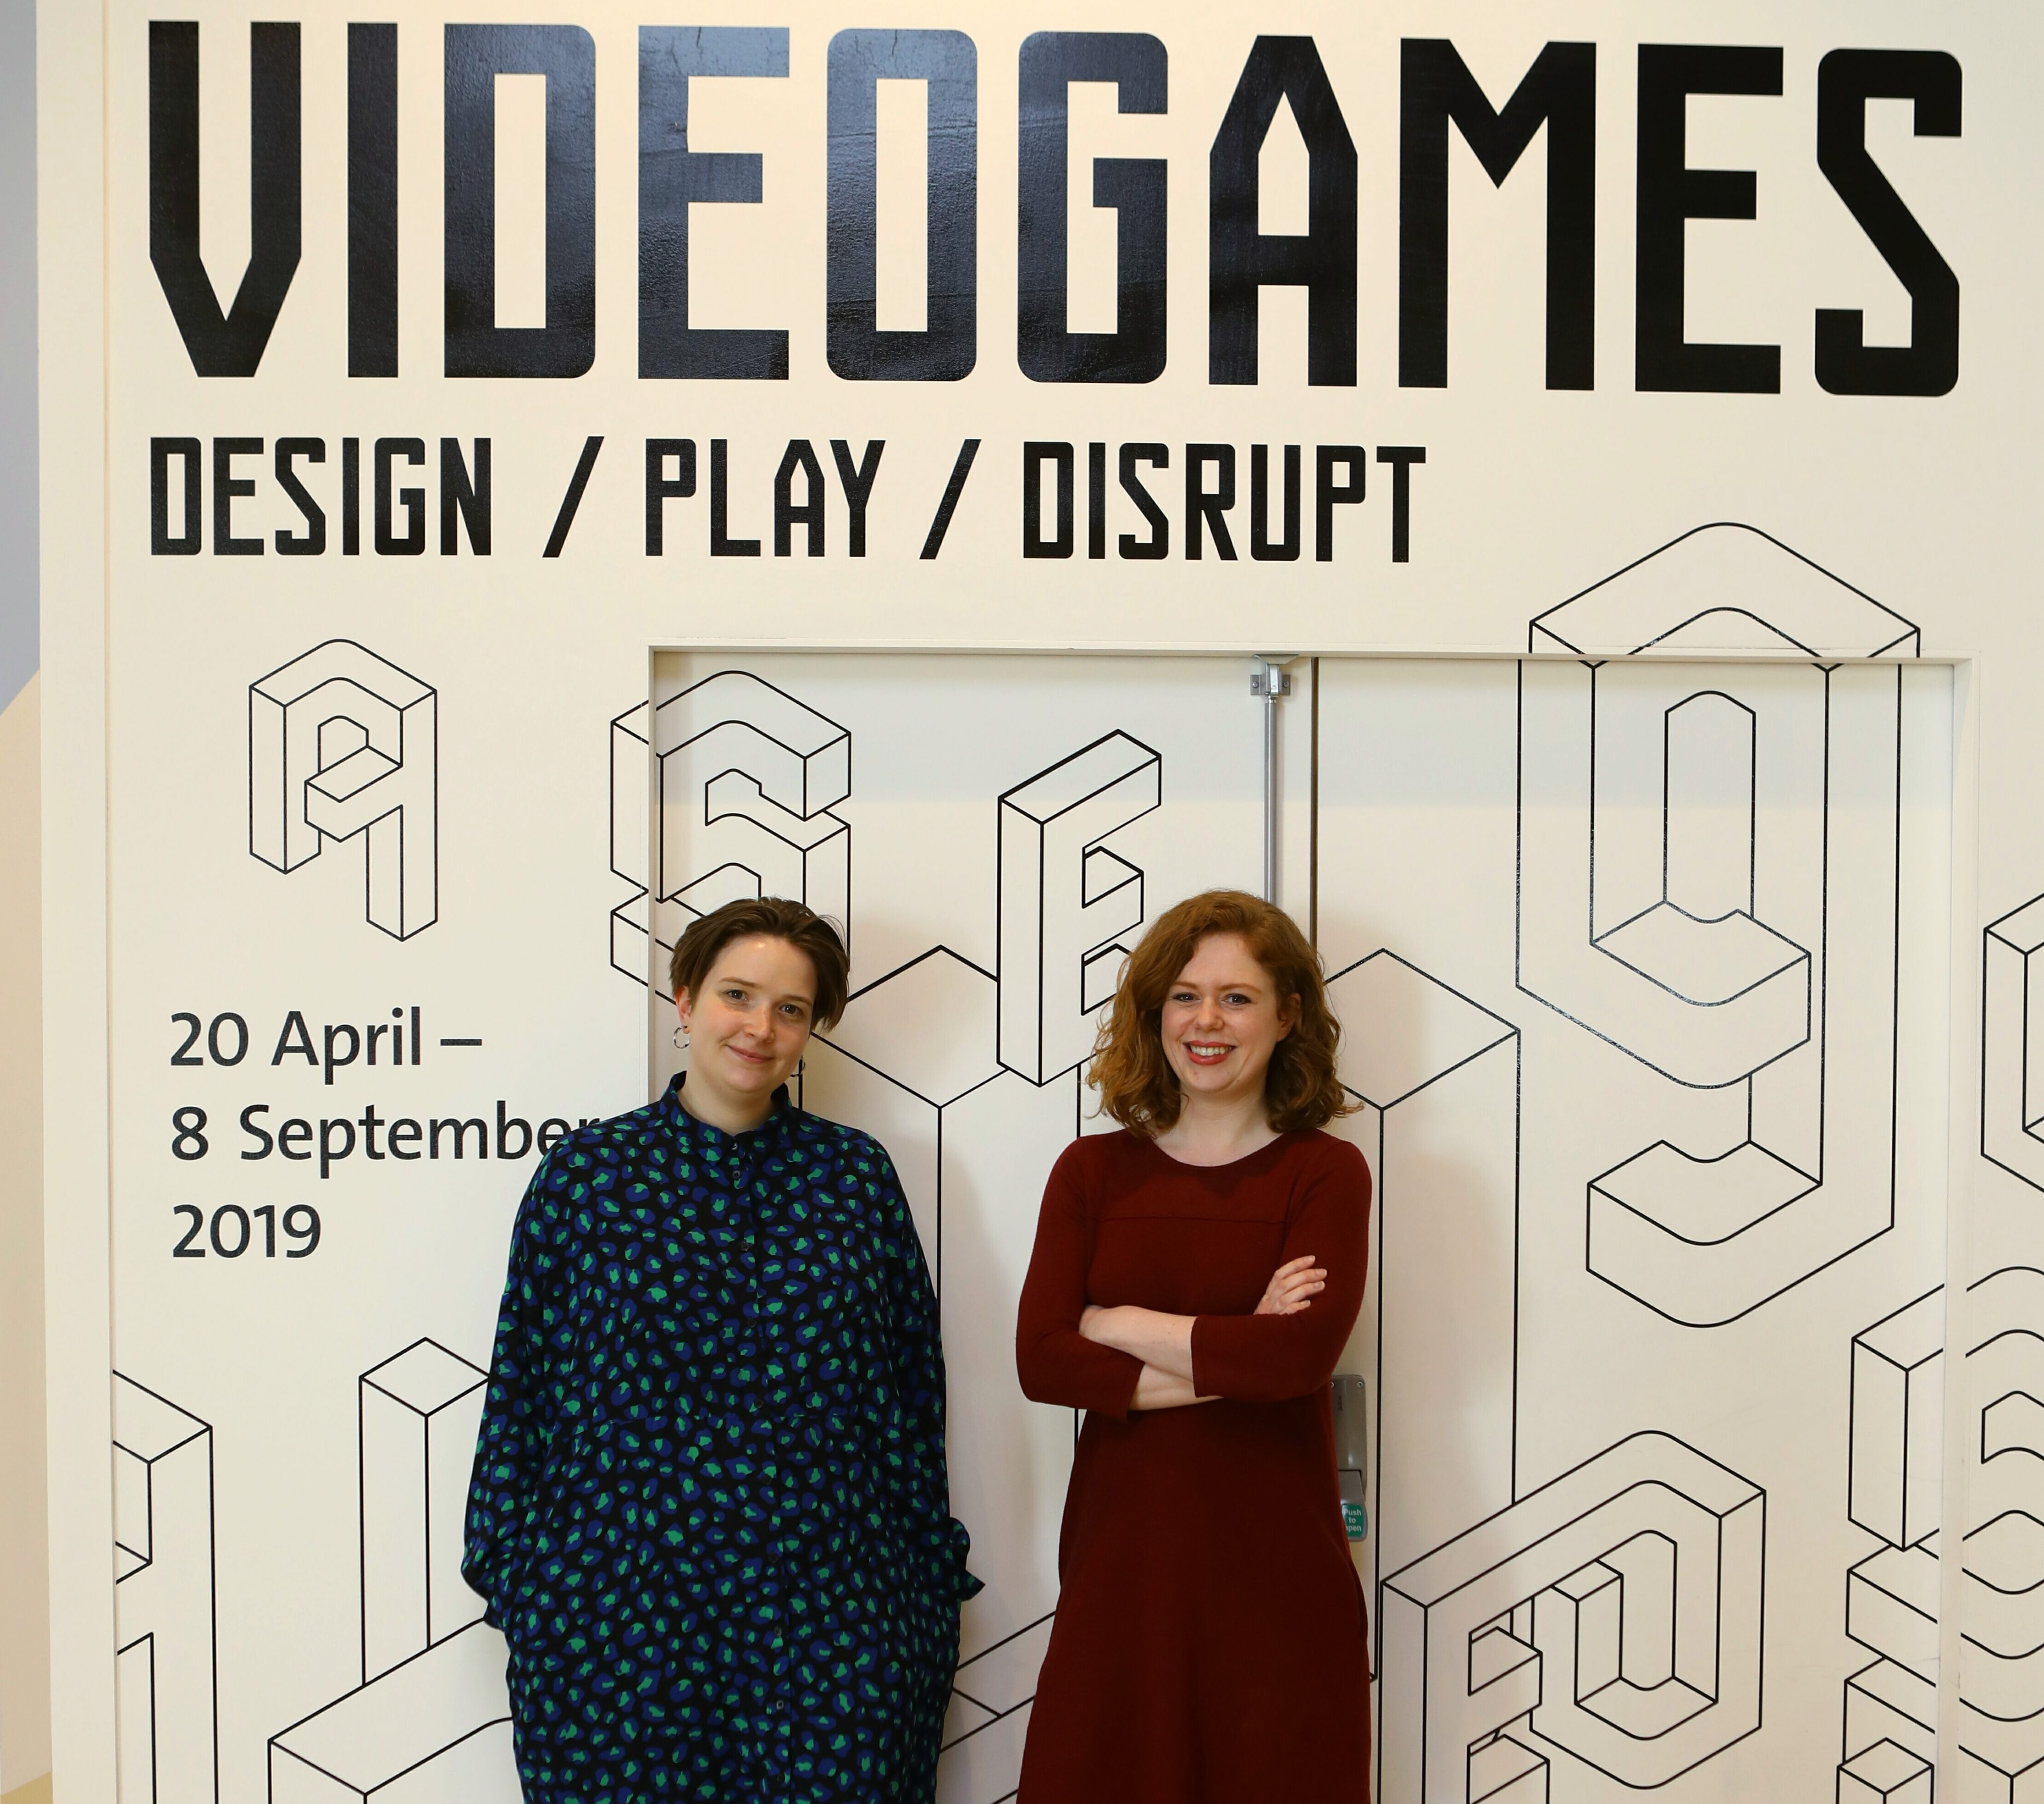 Lauren Bassam, left, and Meredith More, curators for the forthcoming exhibition Videogames, at the V&A Dundee